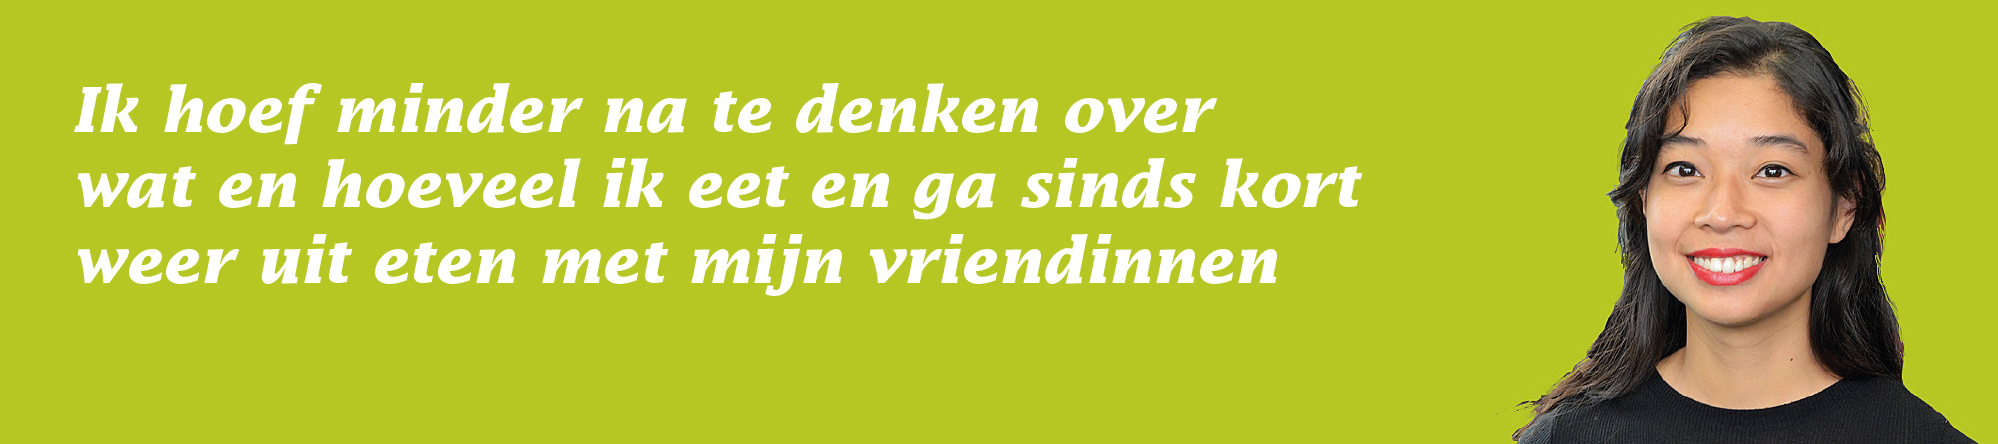 https://de-dietist.nl/wp-content/uploads/2016/09/de-dietist-quote-sam.jpg